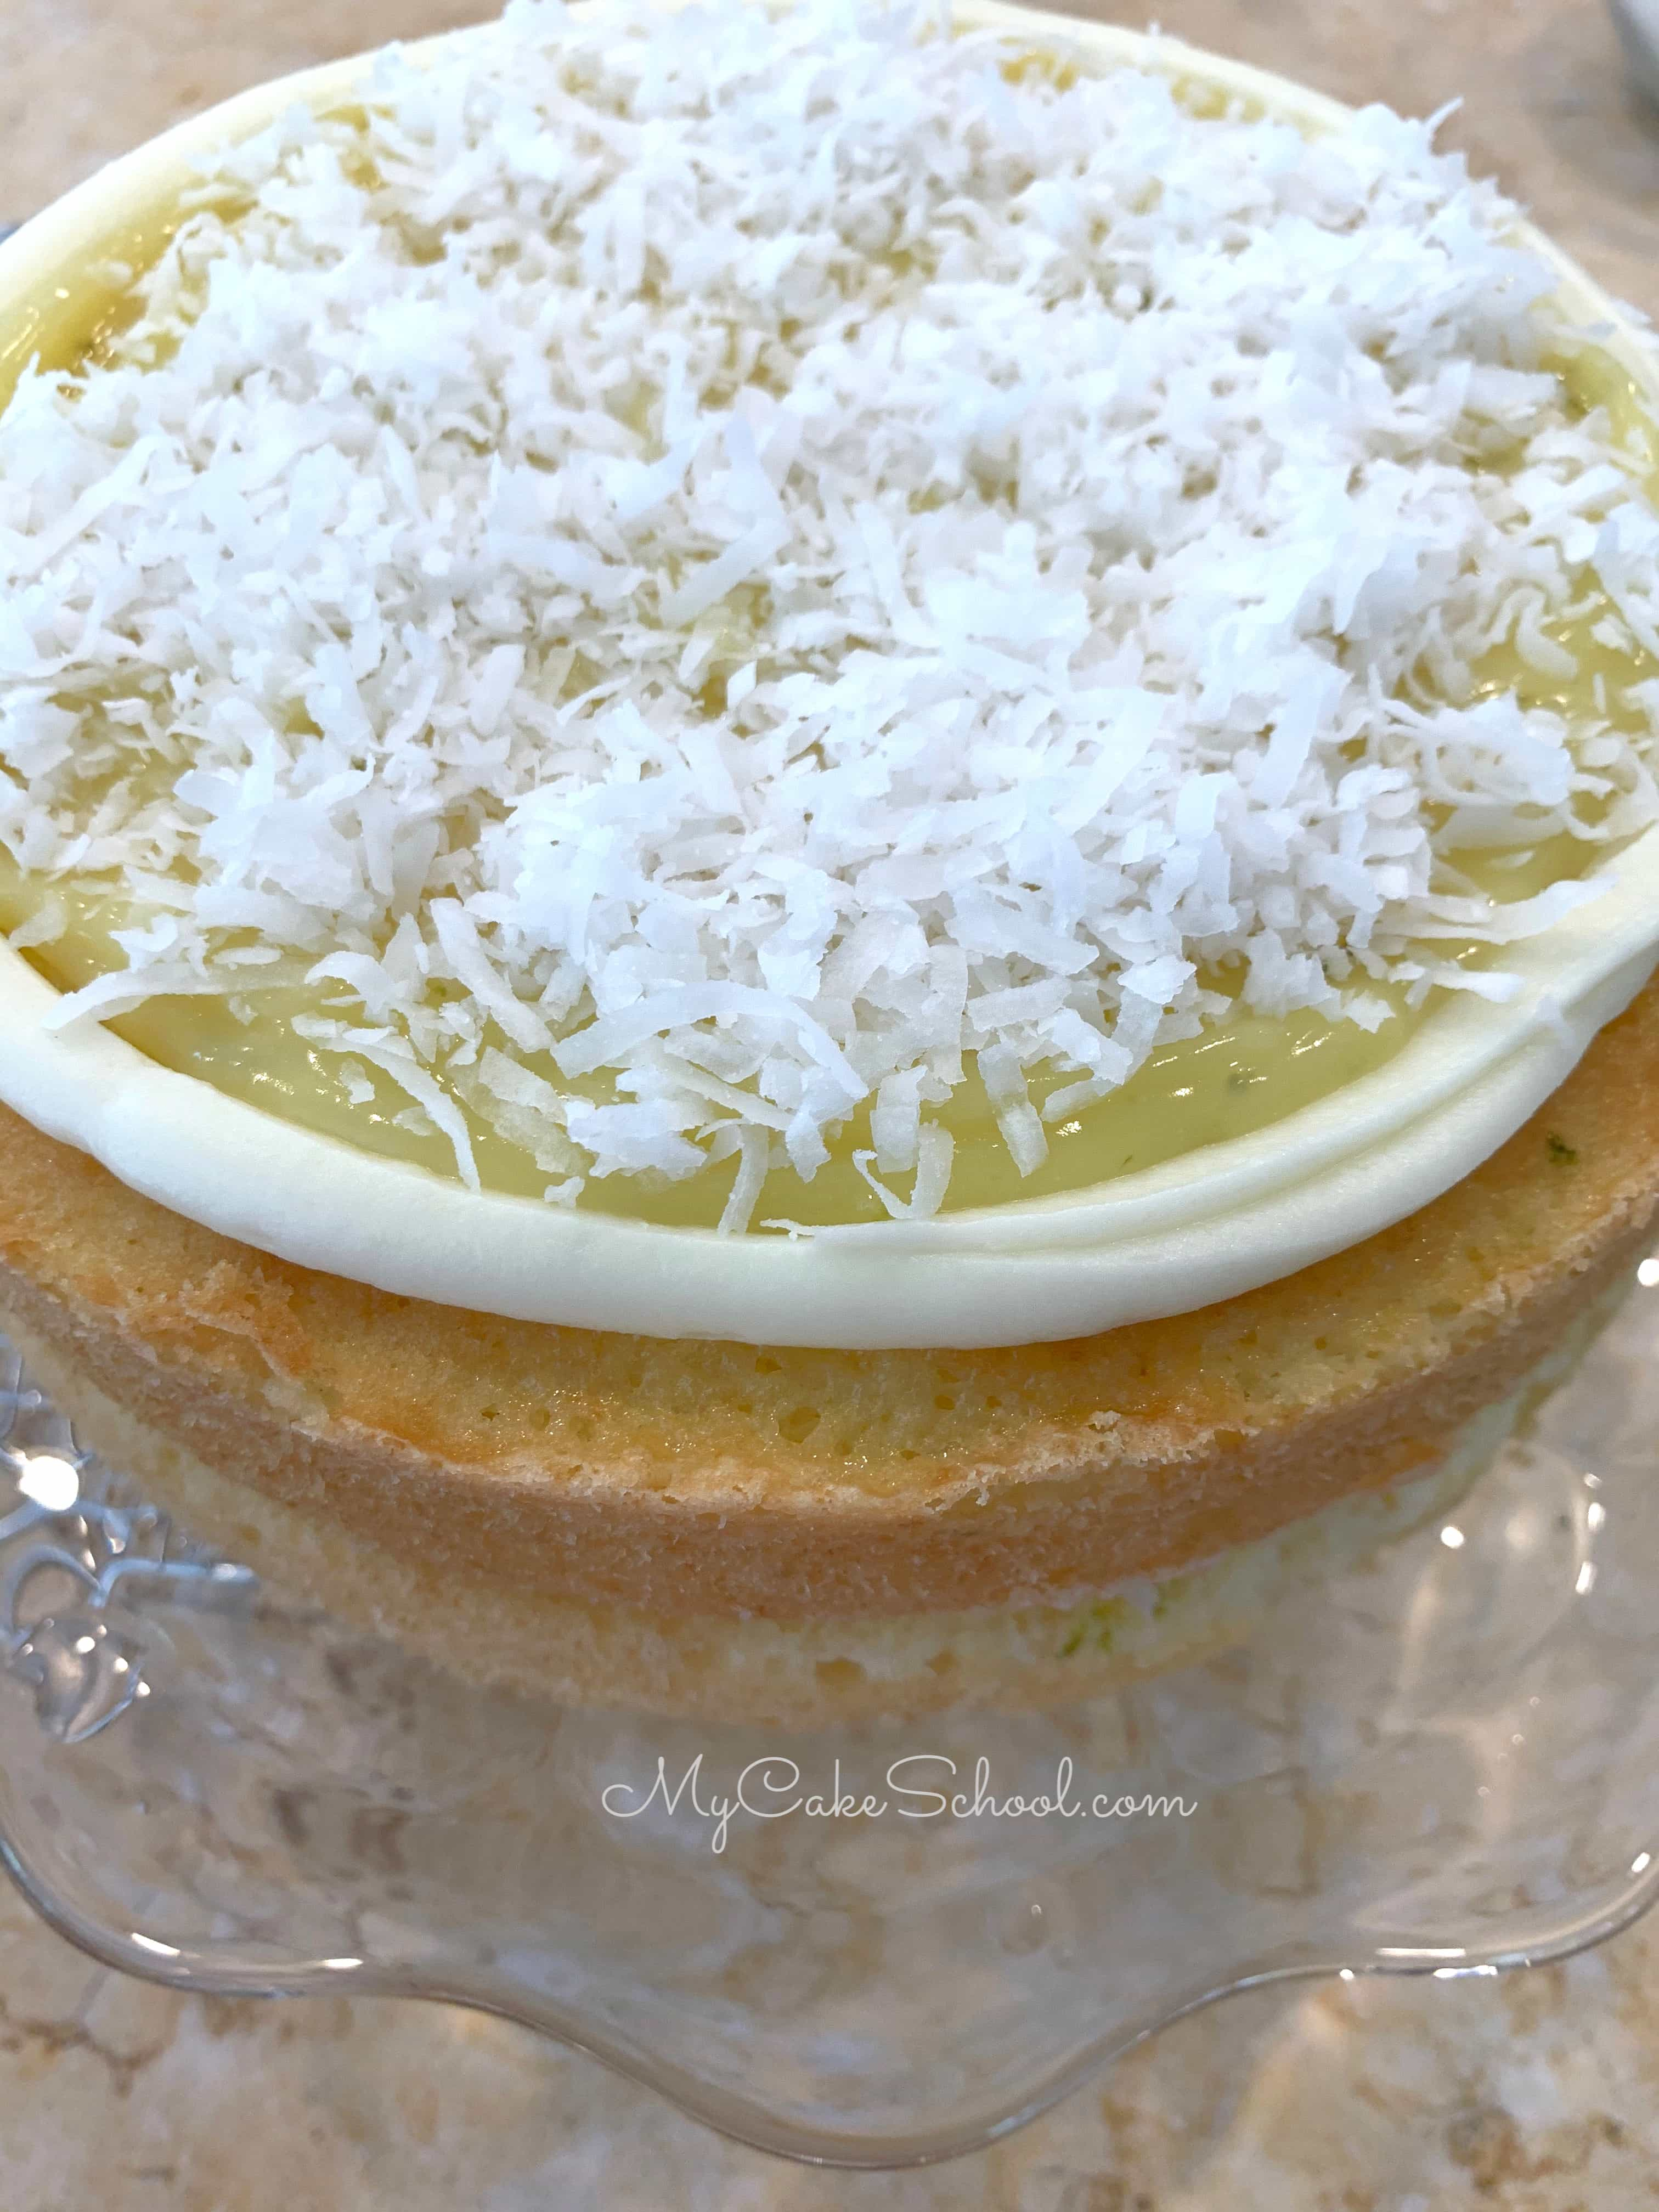 Coconut Lime Cake from Scratch- A Delicious Recipe!